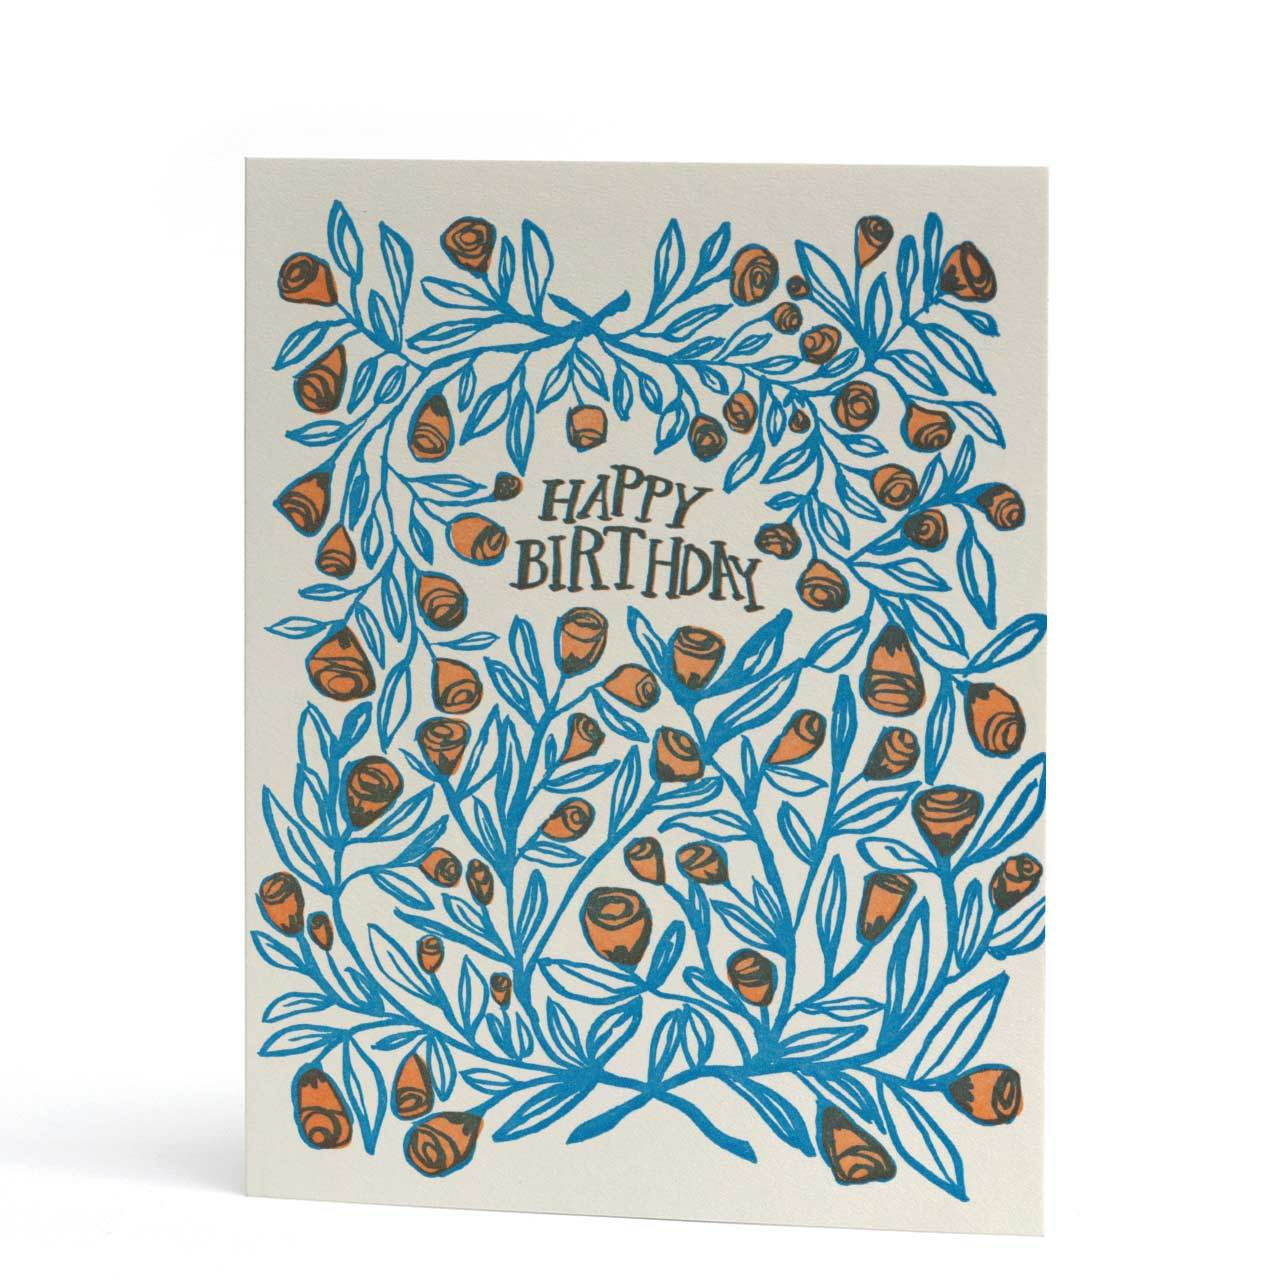 Happy Birthday Roses Letterpress Greeting Card